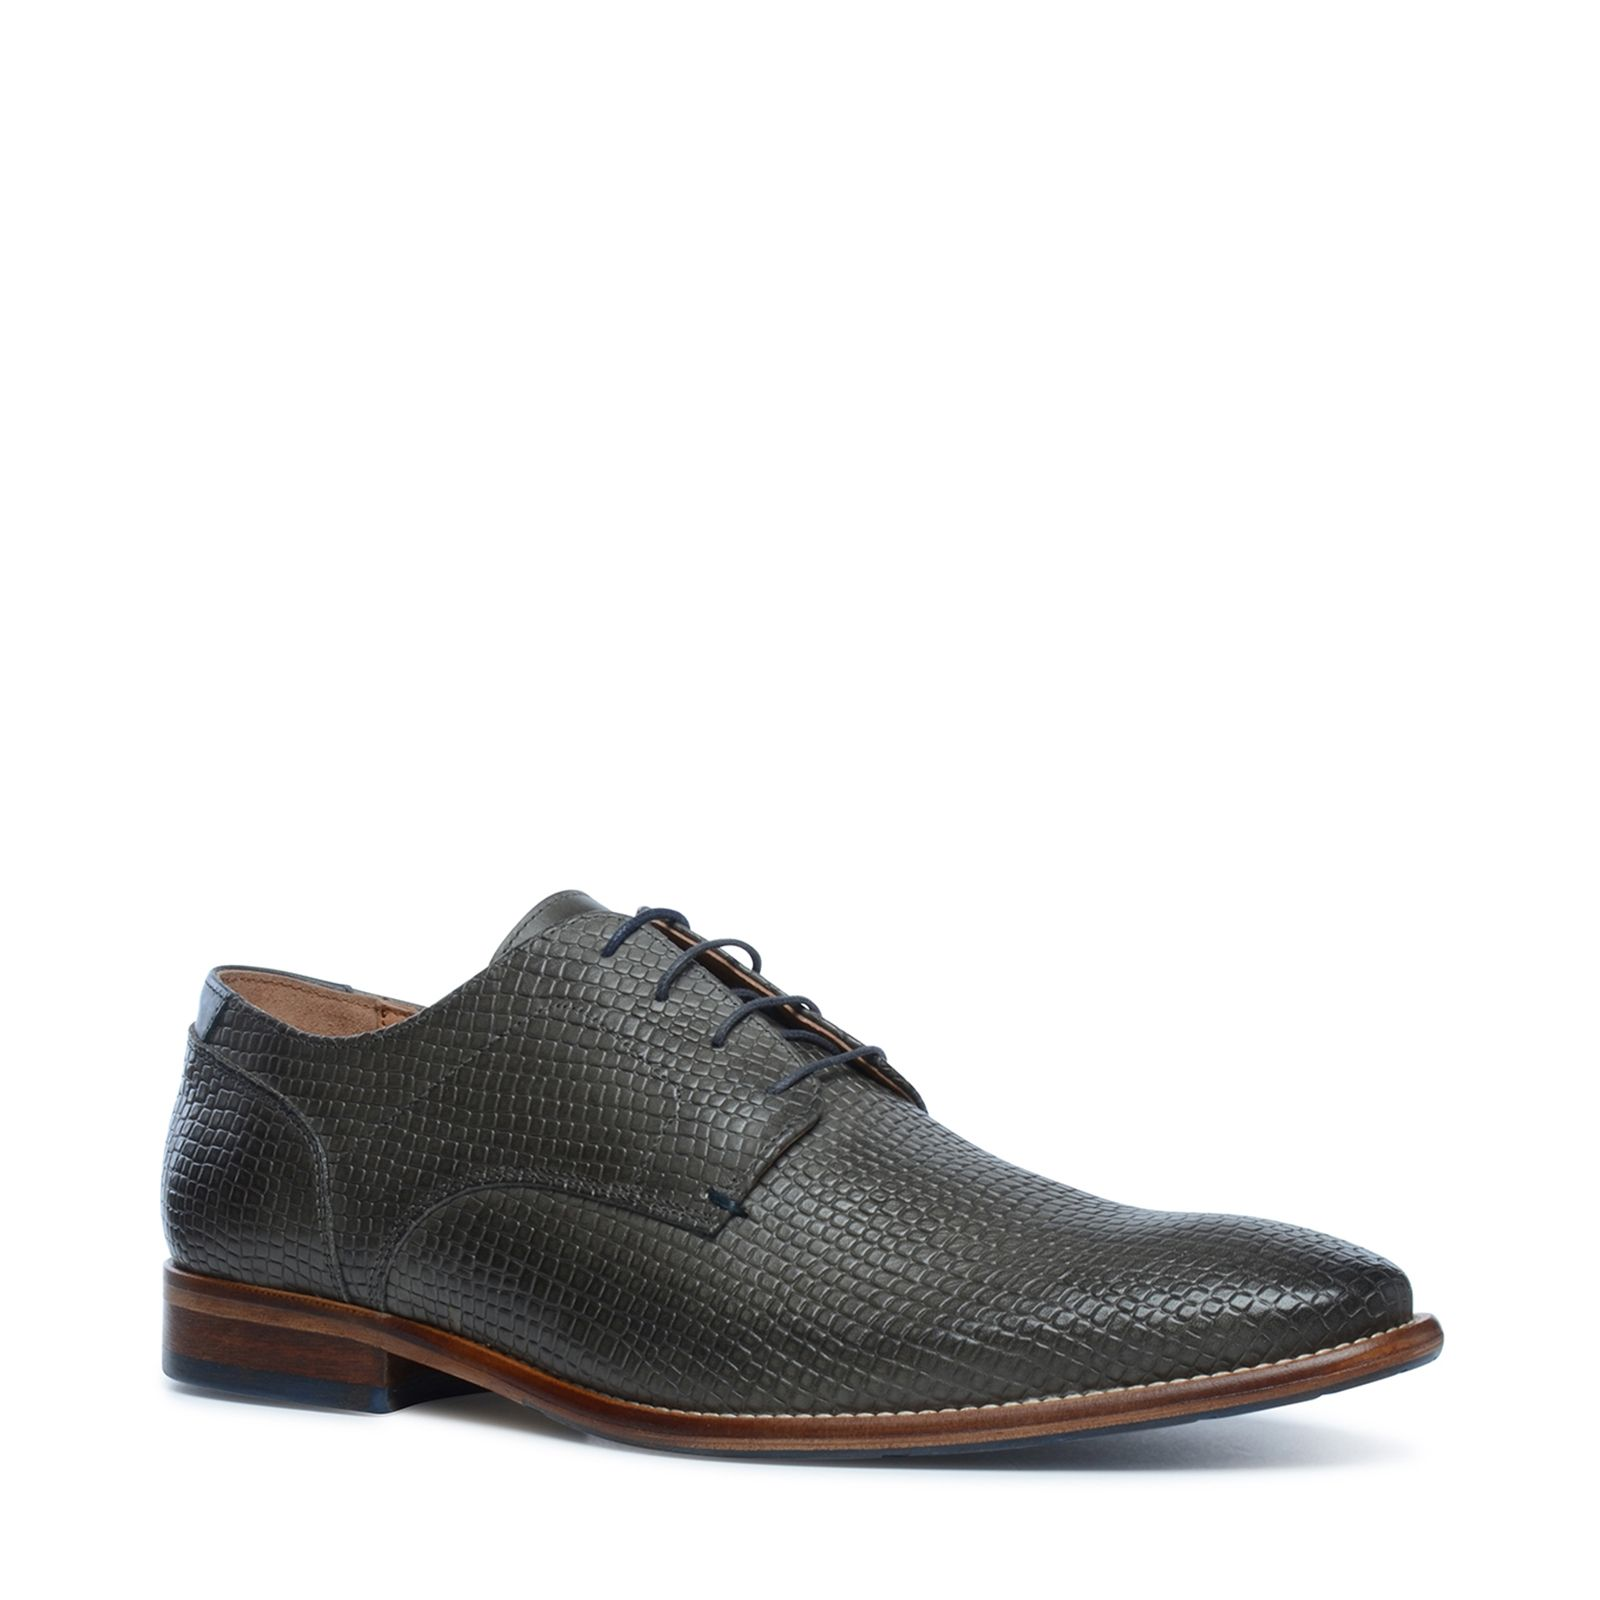 Graue schn rschuhe mit muster for Graue tapete mit muster